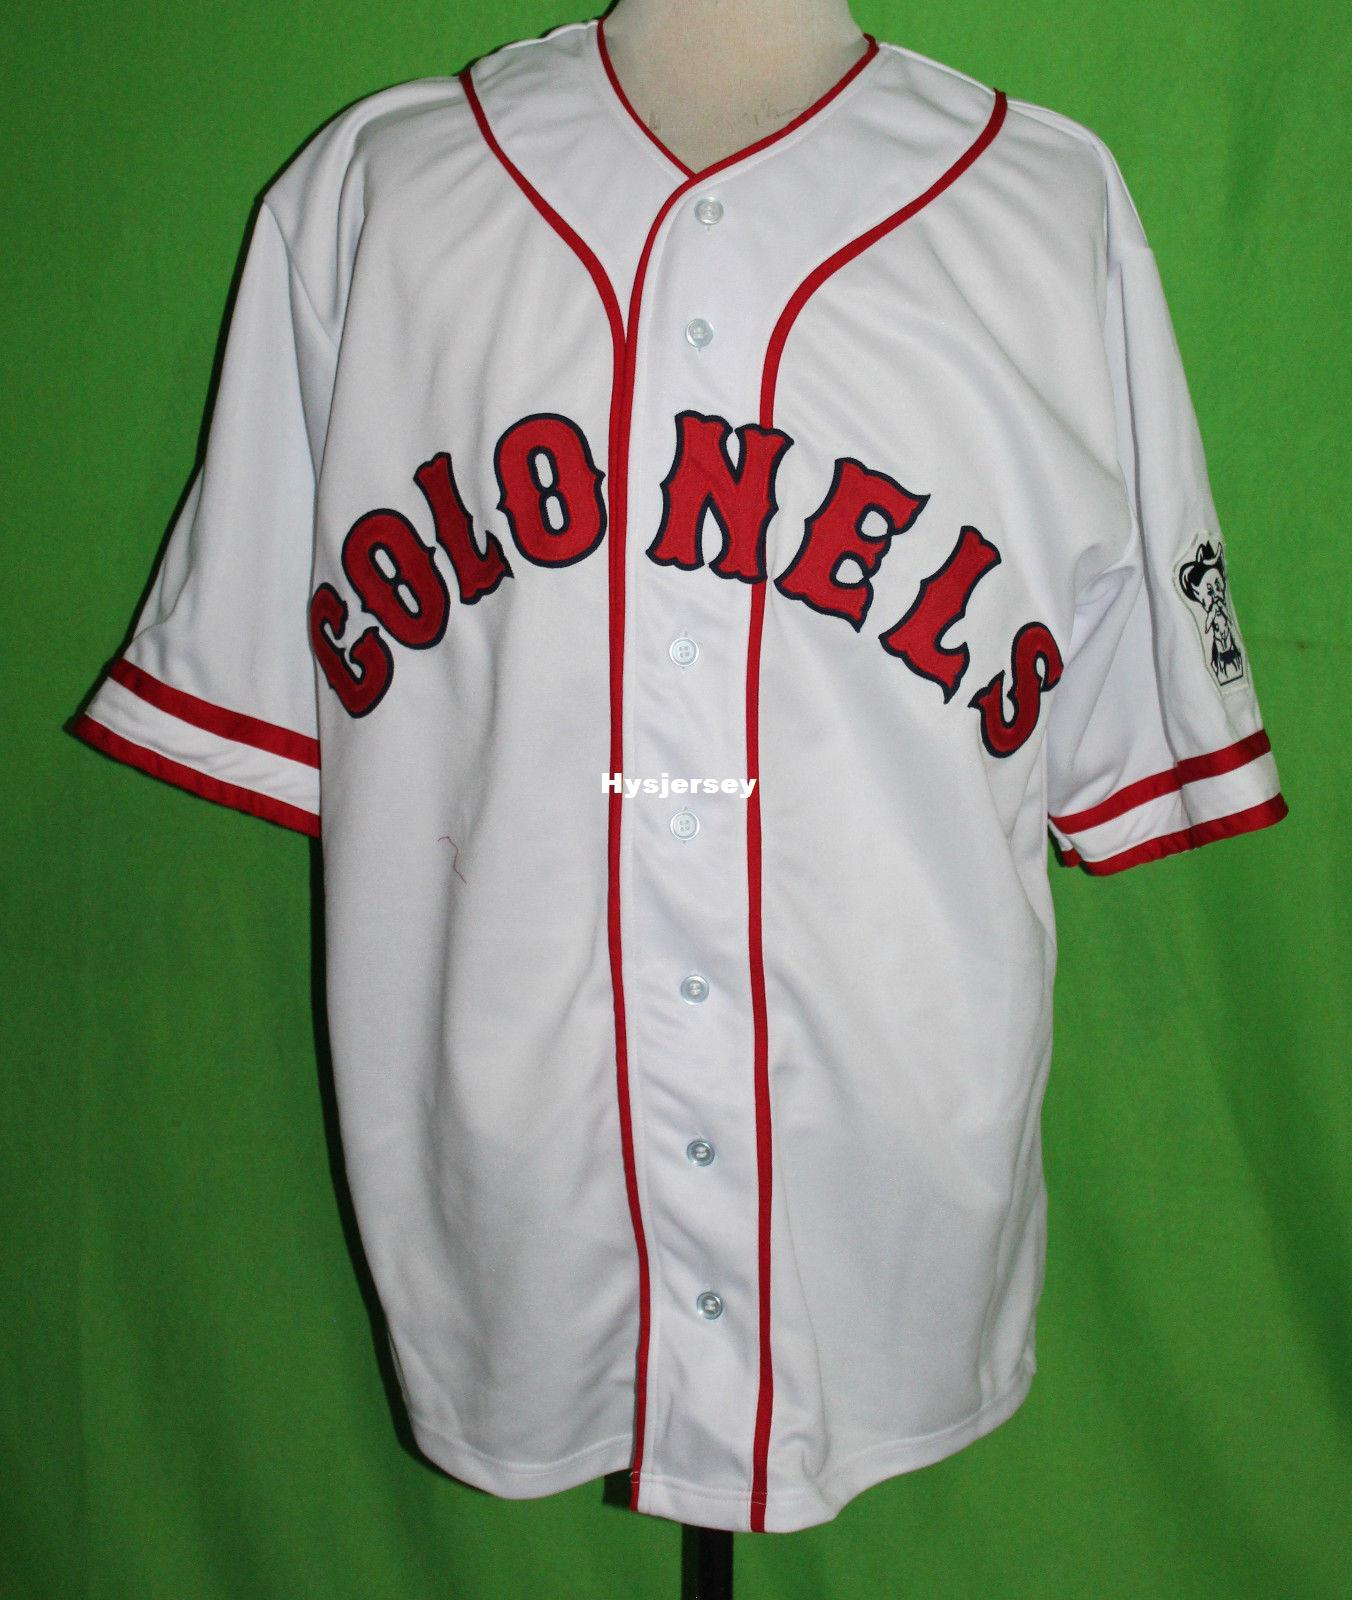 2019 Cheap Retro LOUISVILLE COLONELS  9 1950 Home BASEBALL JERSEY Or Custom  Any Number Any Mens Vintage Jerseys XS 5XL From Hysjersey 4ead31d3f2a1